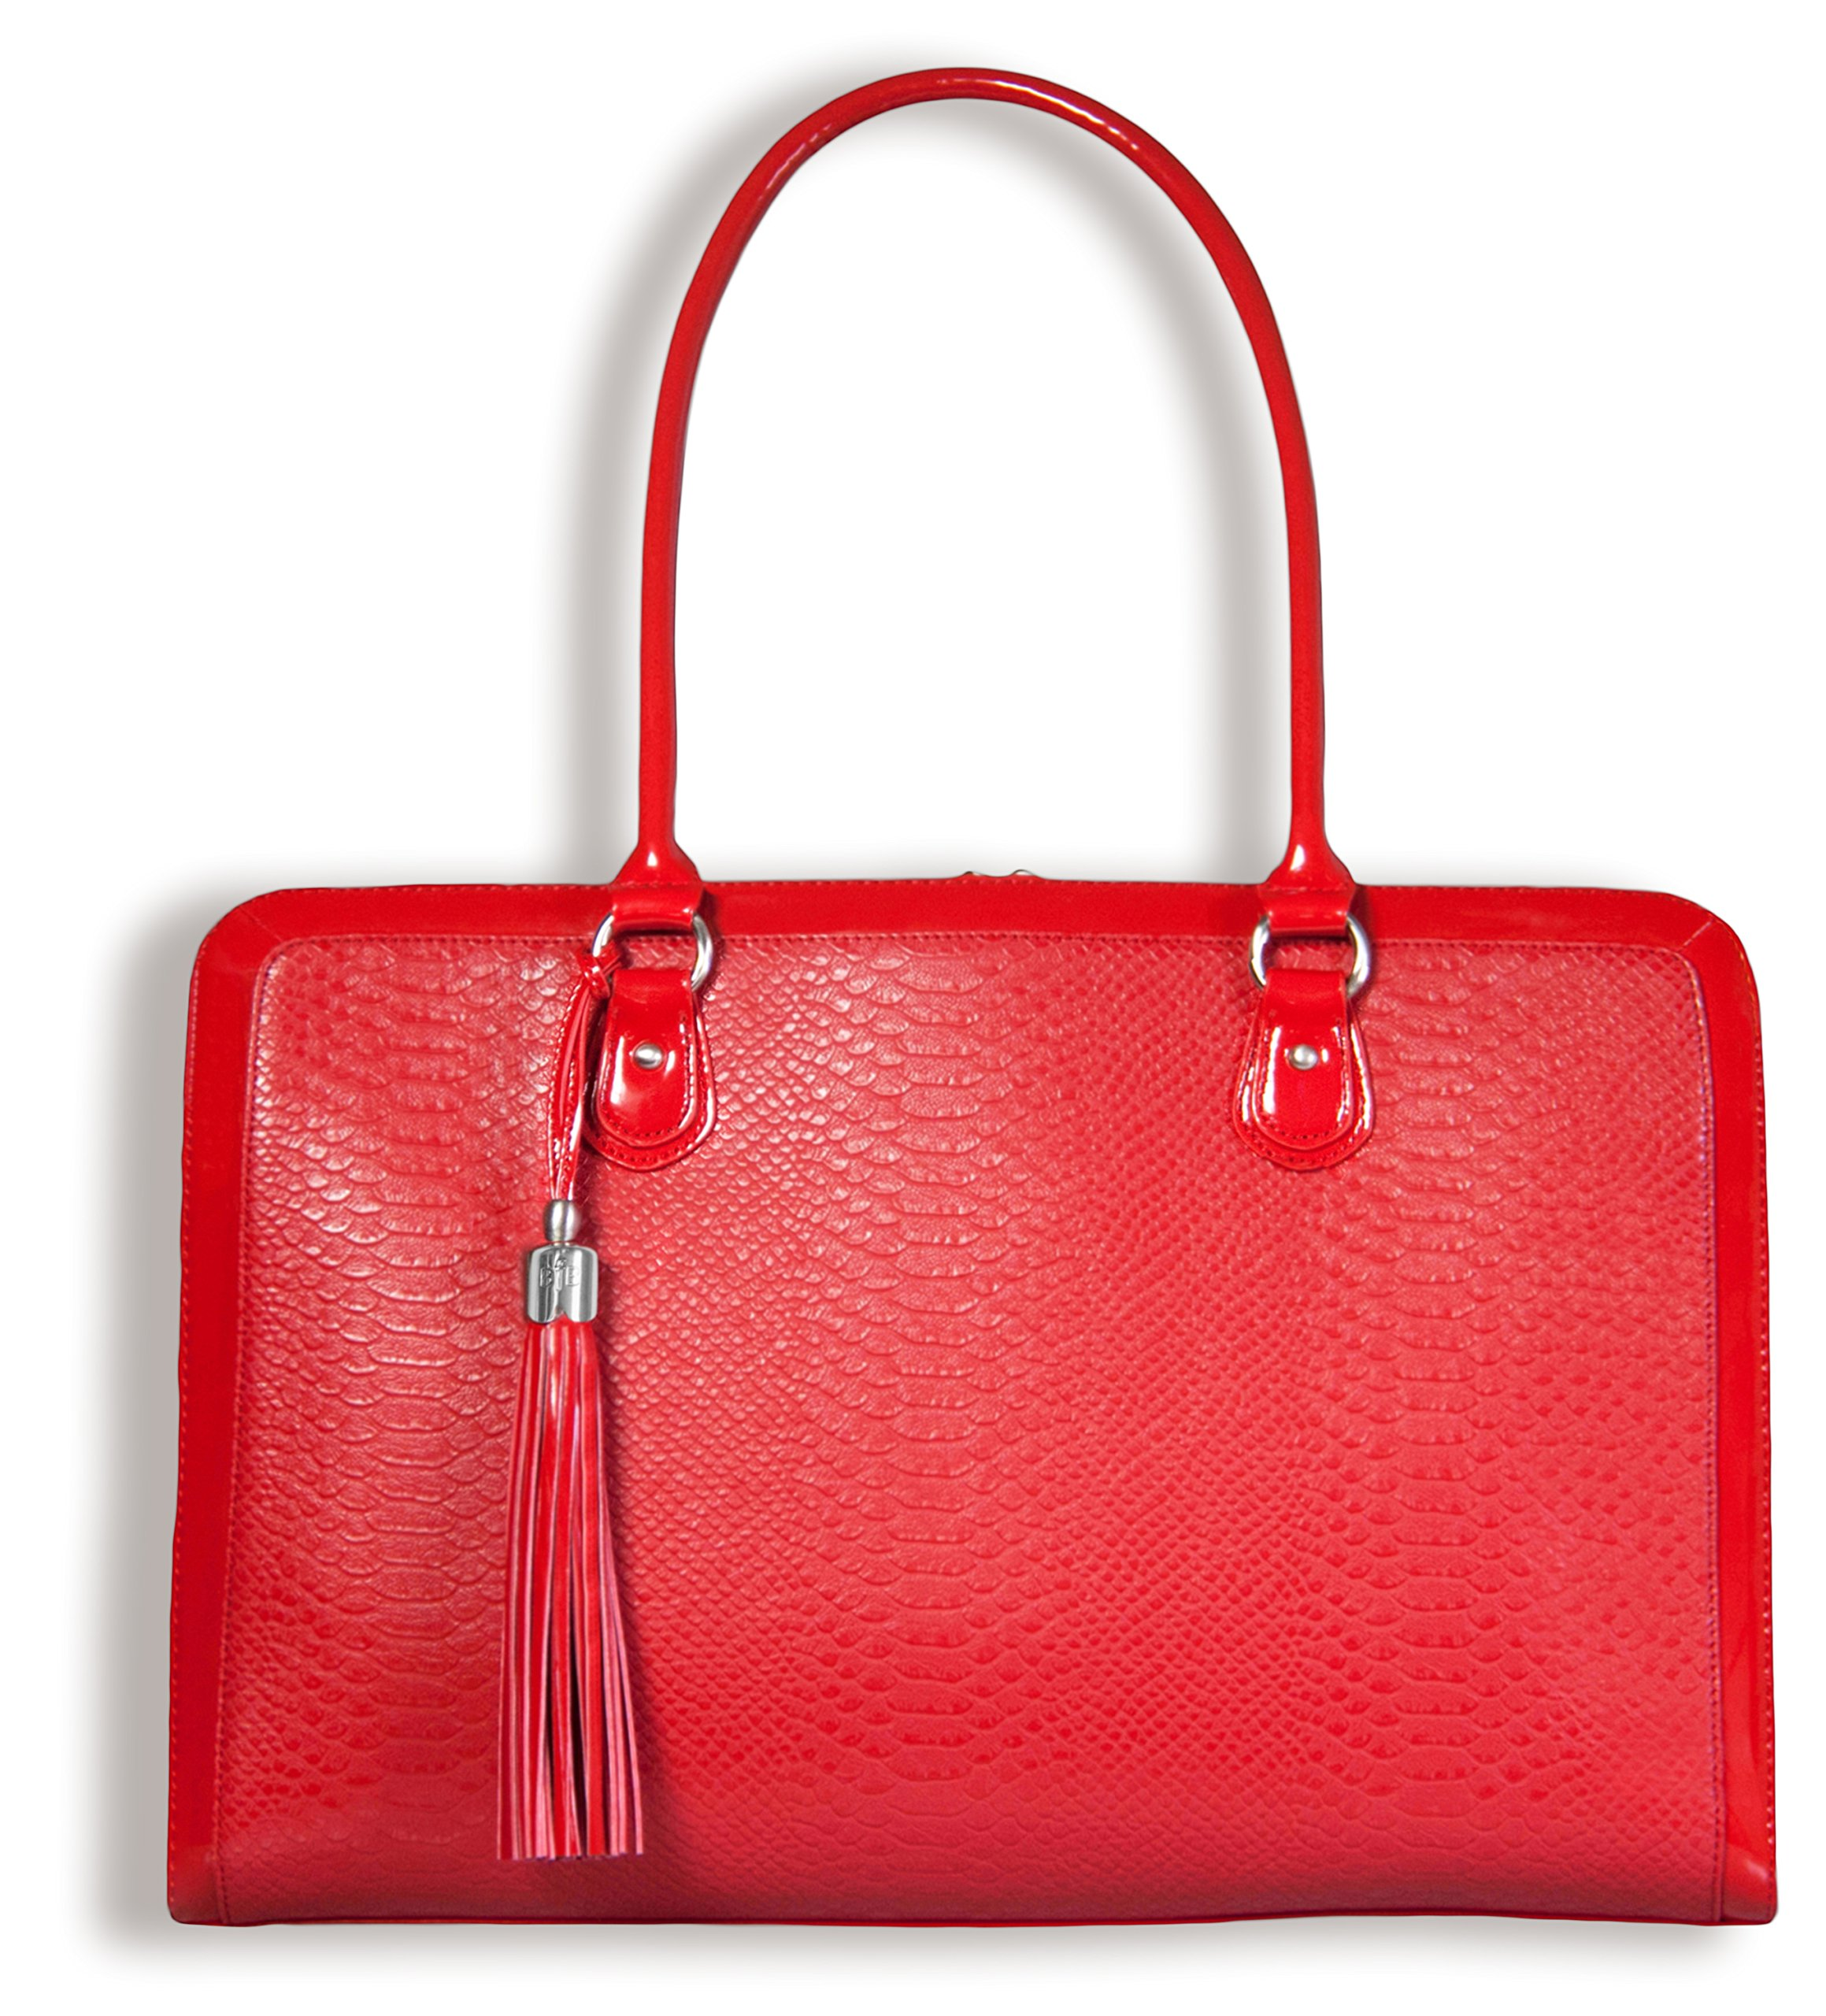 BfB Womens Briefcase for Women – Handmade 17 Laptop Shoulder Bag - RED by My Best Friend is a Bag